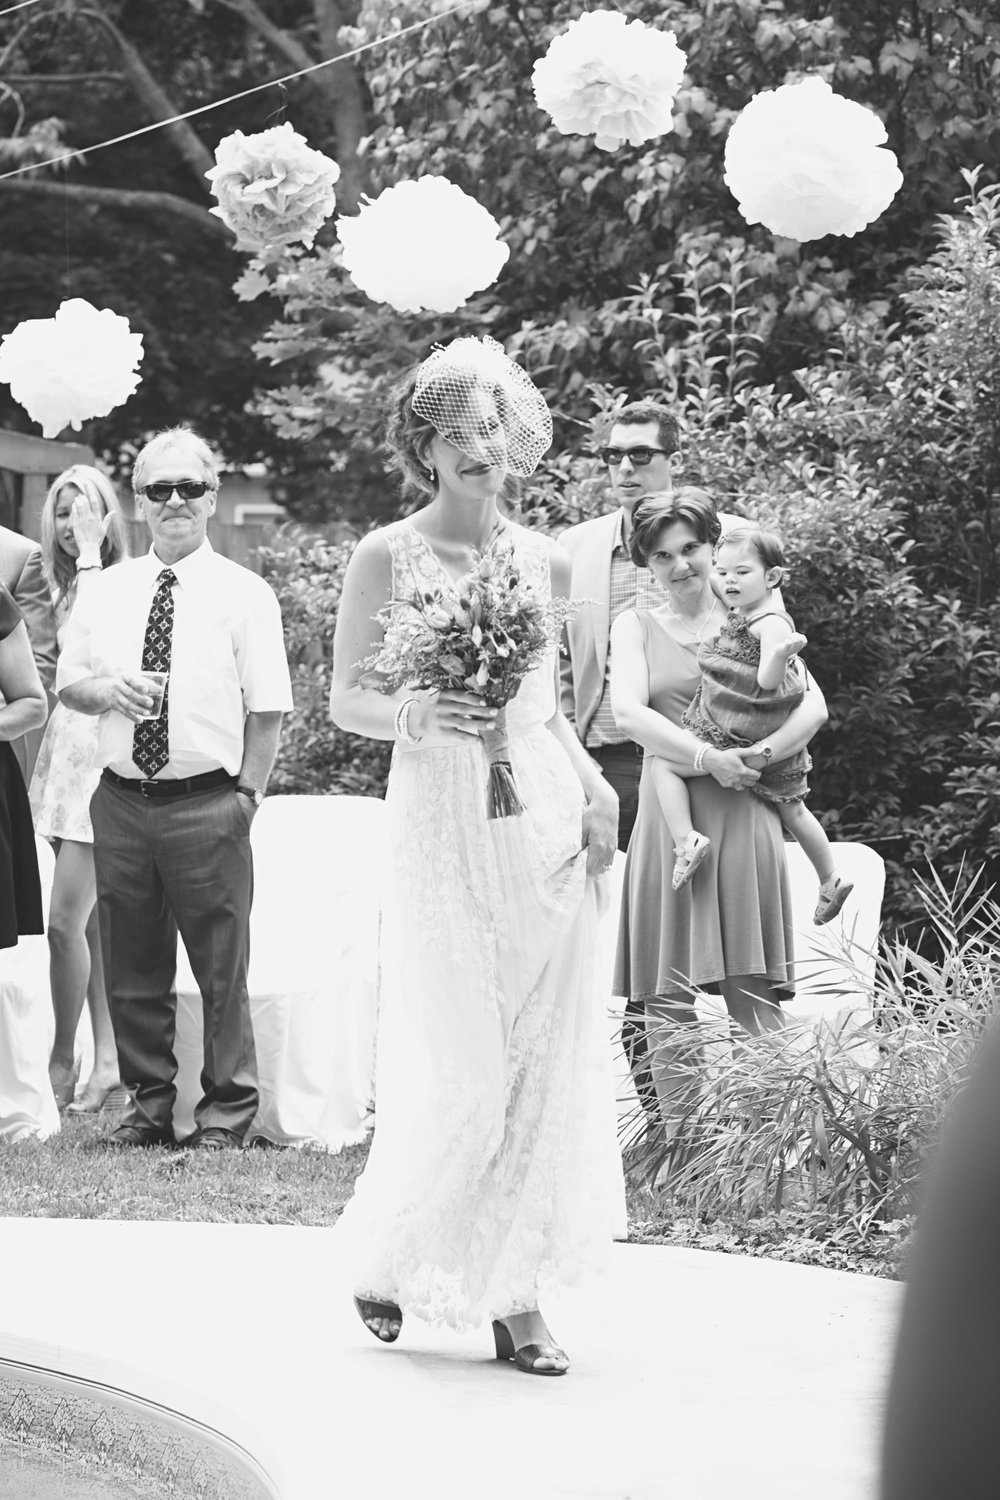 Bride walking down aisle at backyard wedding